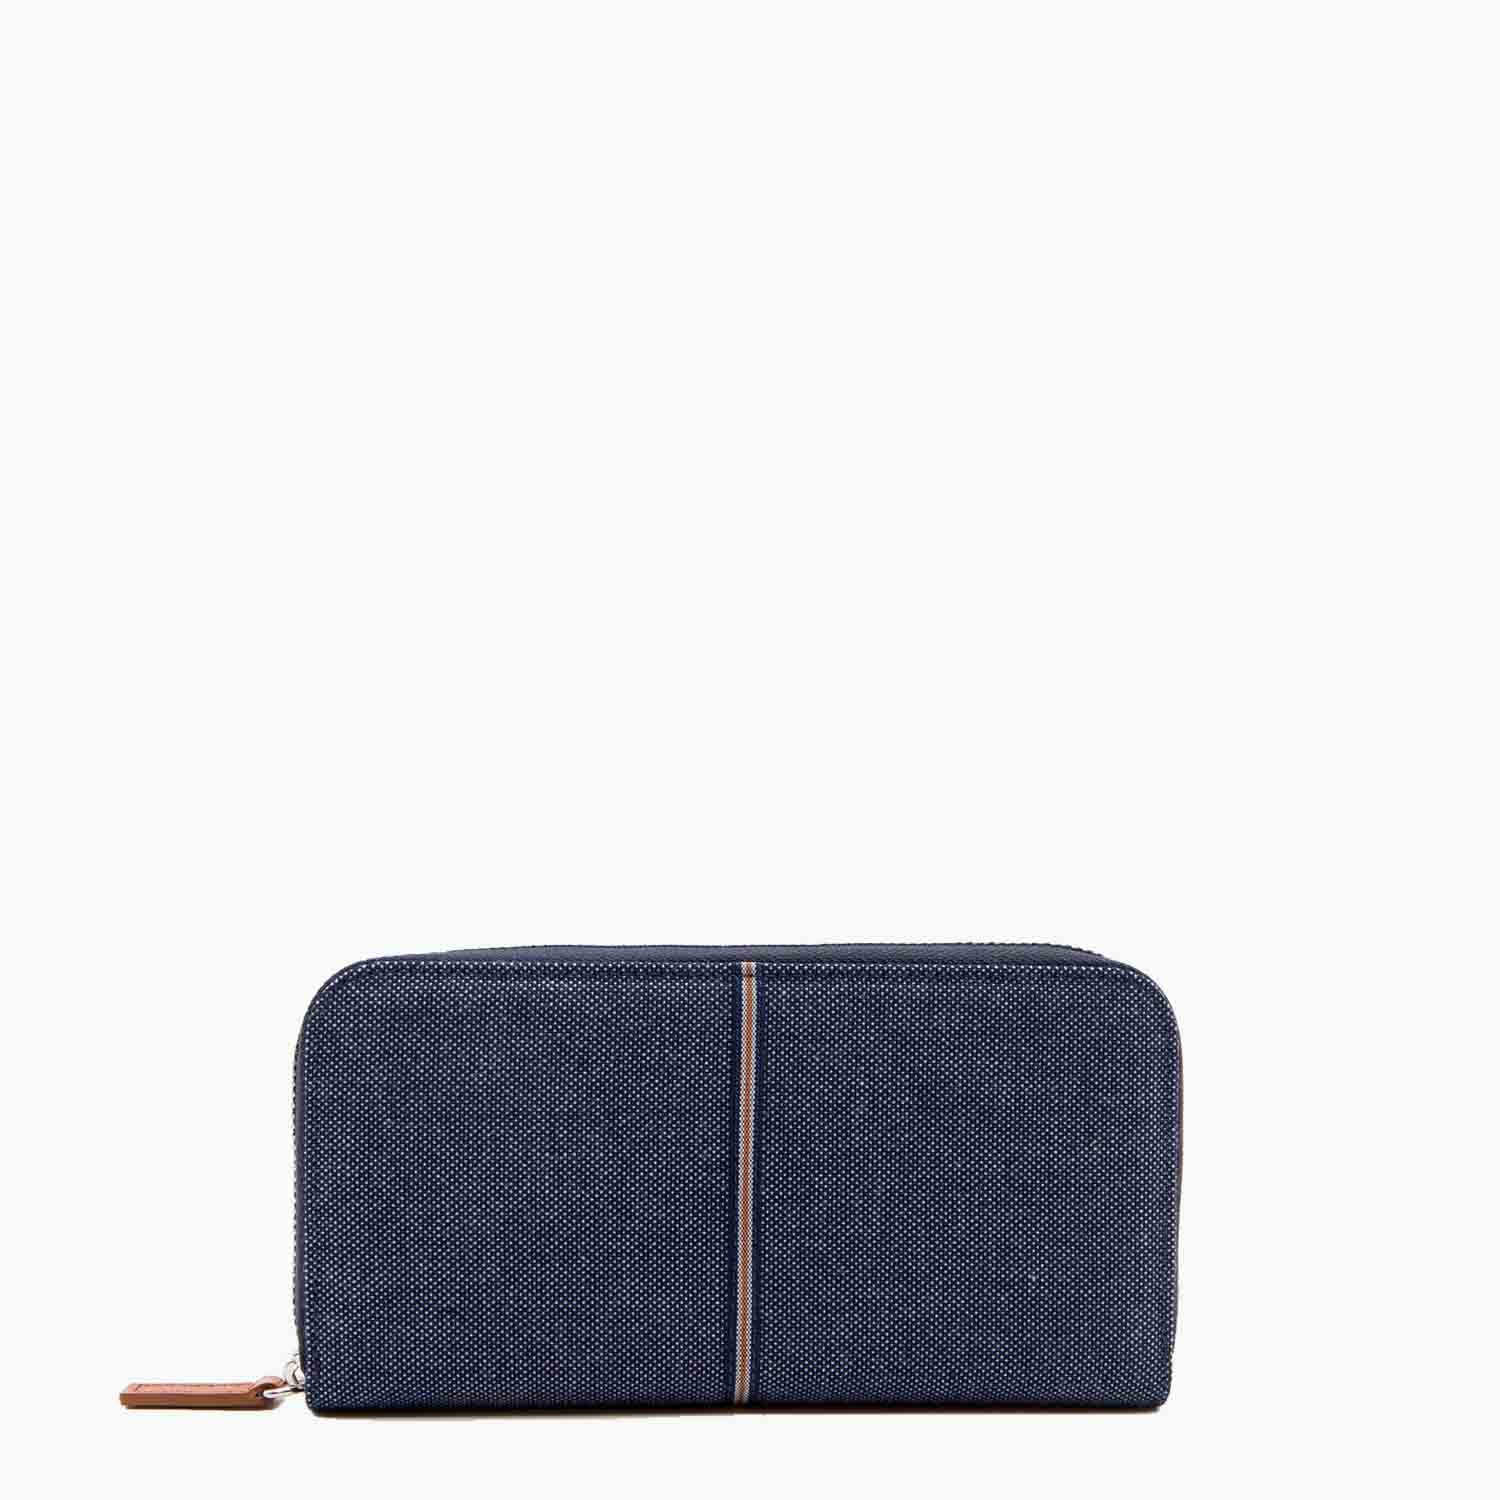 Mia Wallet Denim and Leather